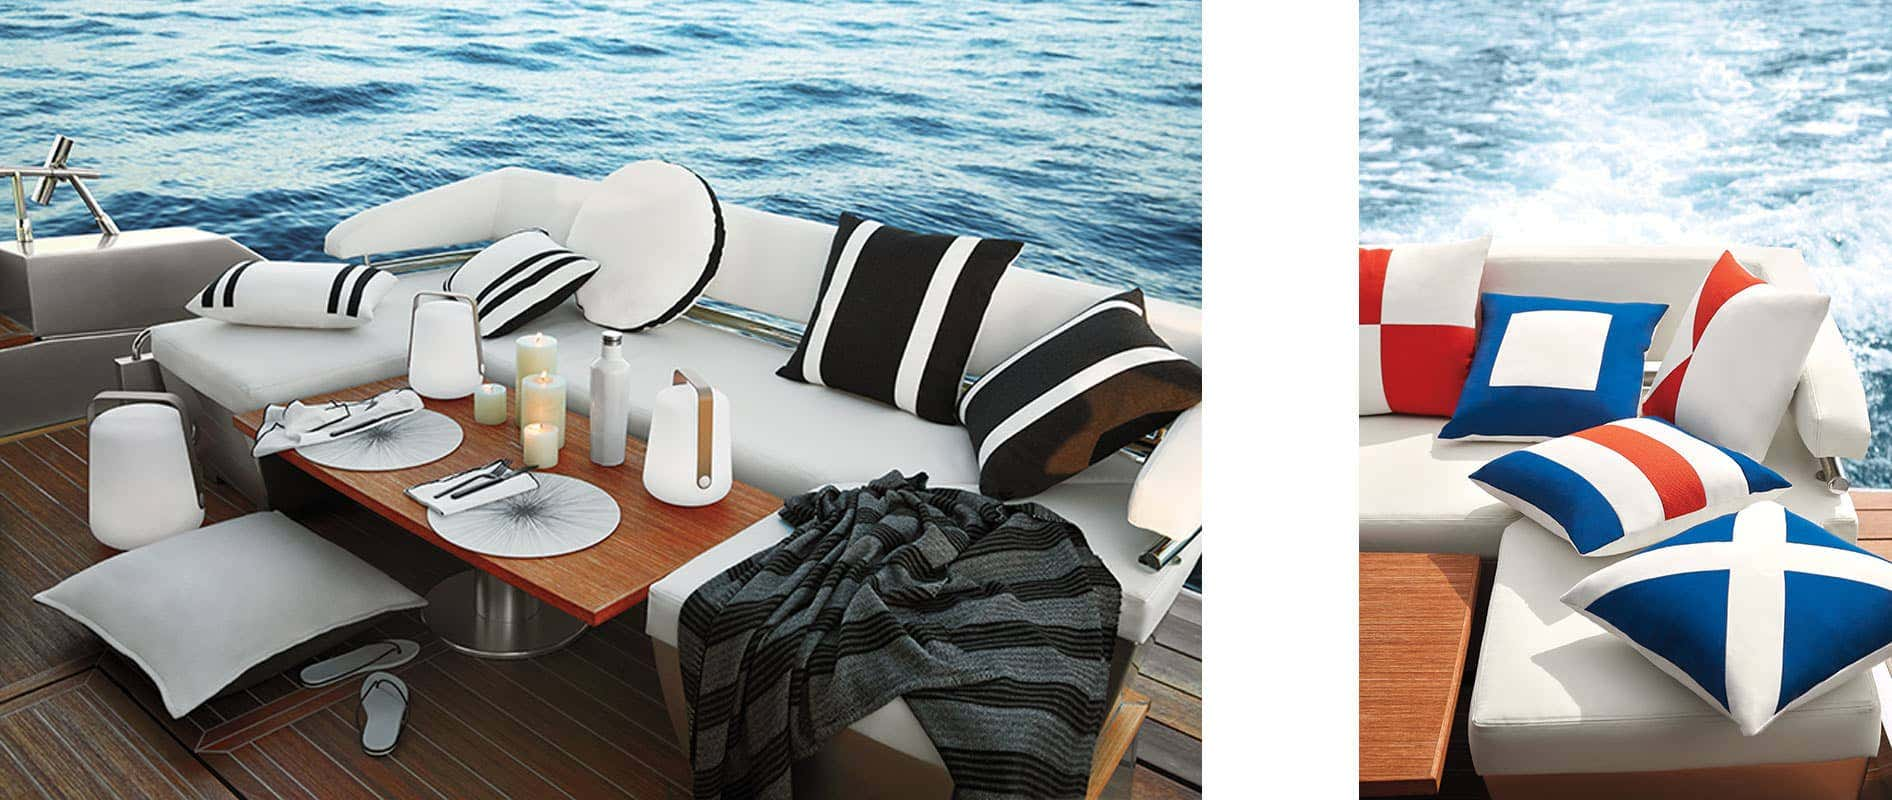 Pillows on a Boat